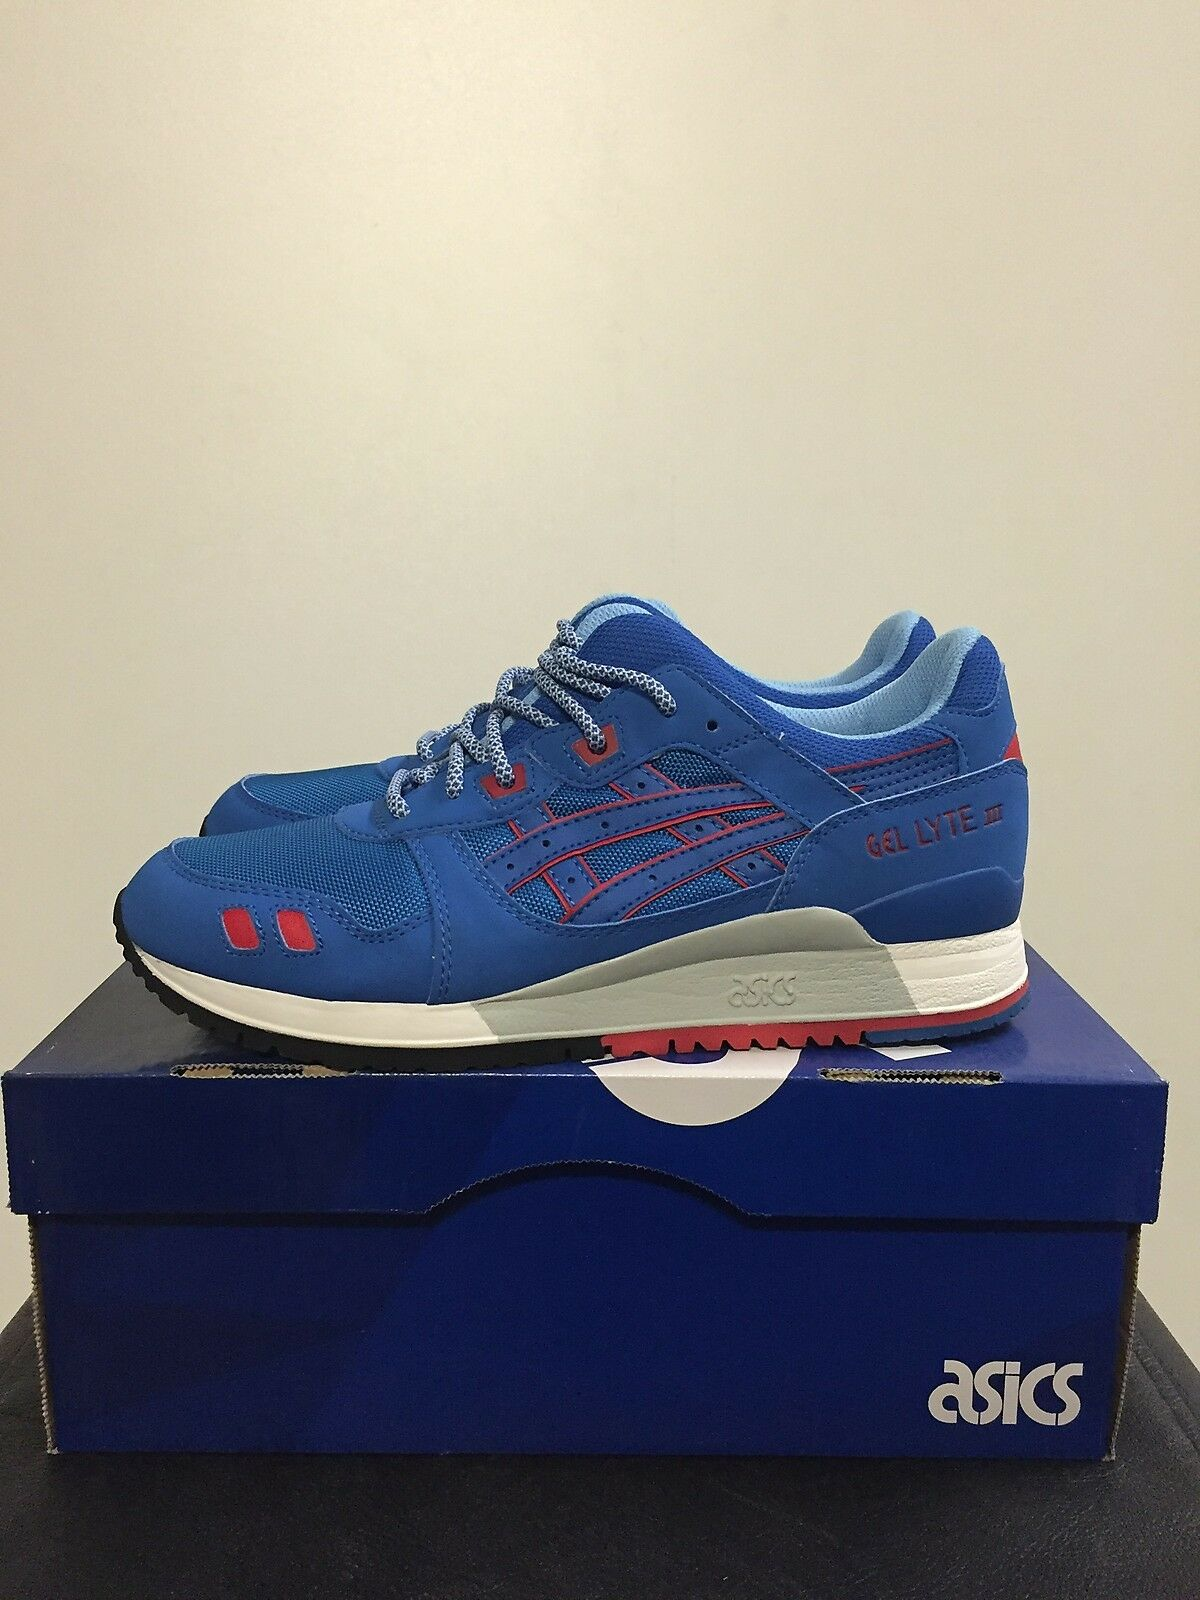 Asics Gel Lyte III 3 Mid Bleu Homme Running Chaussures Trainers New H637Y-4242